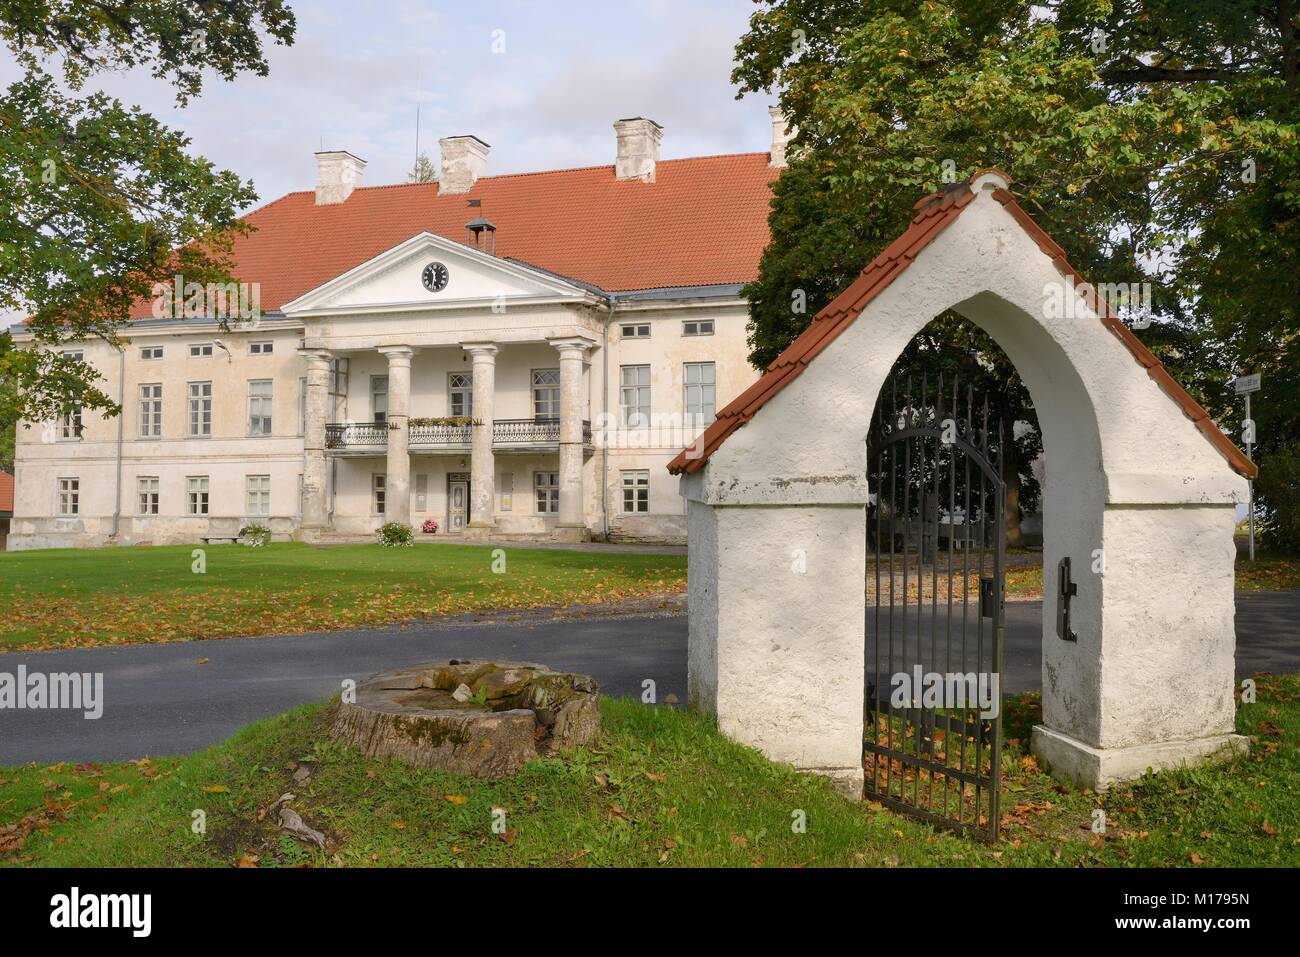 Last August, the manor of Hannibal in Kobrin burned down 23